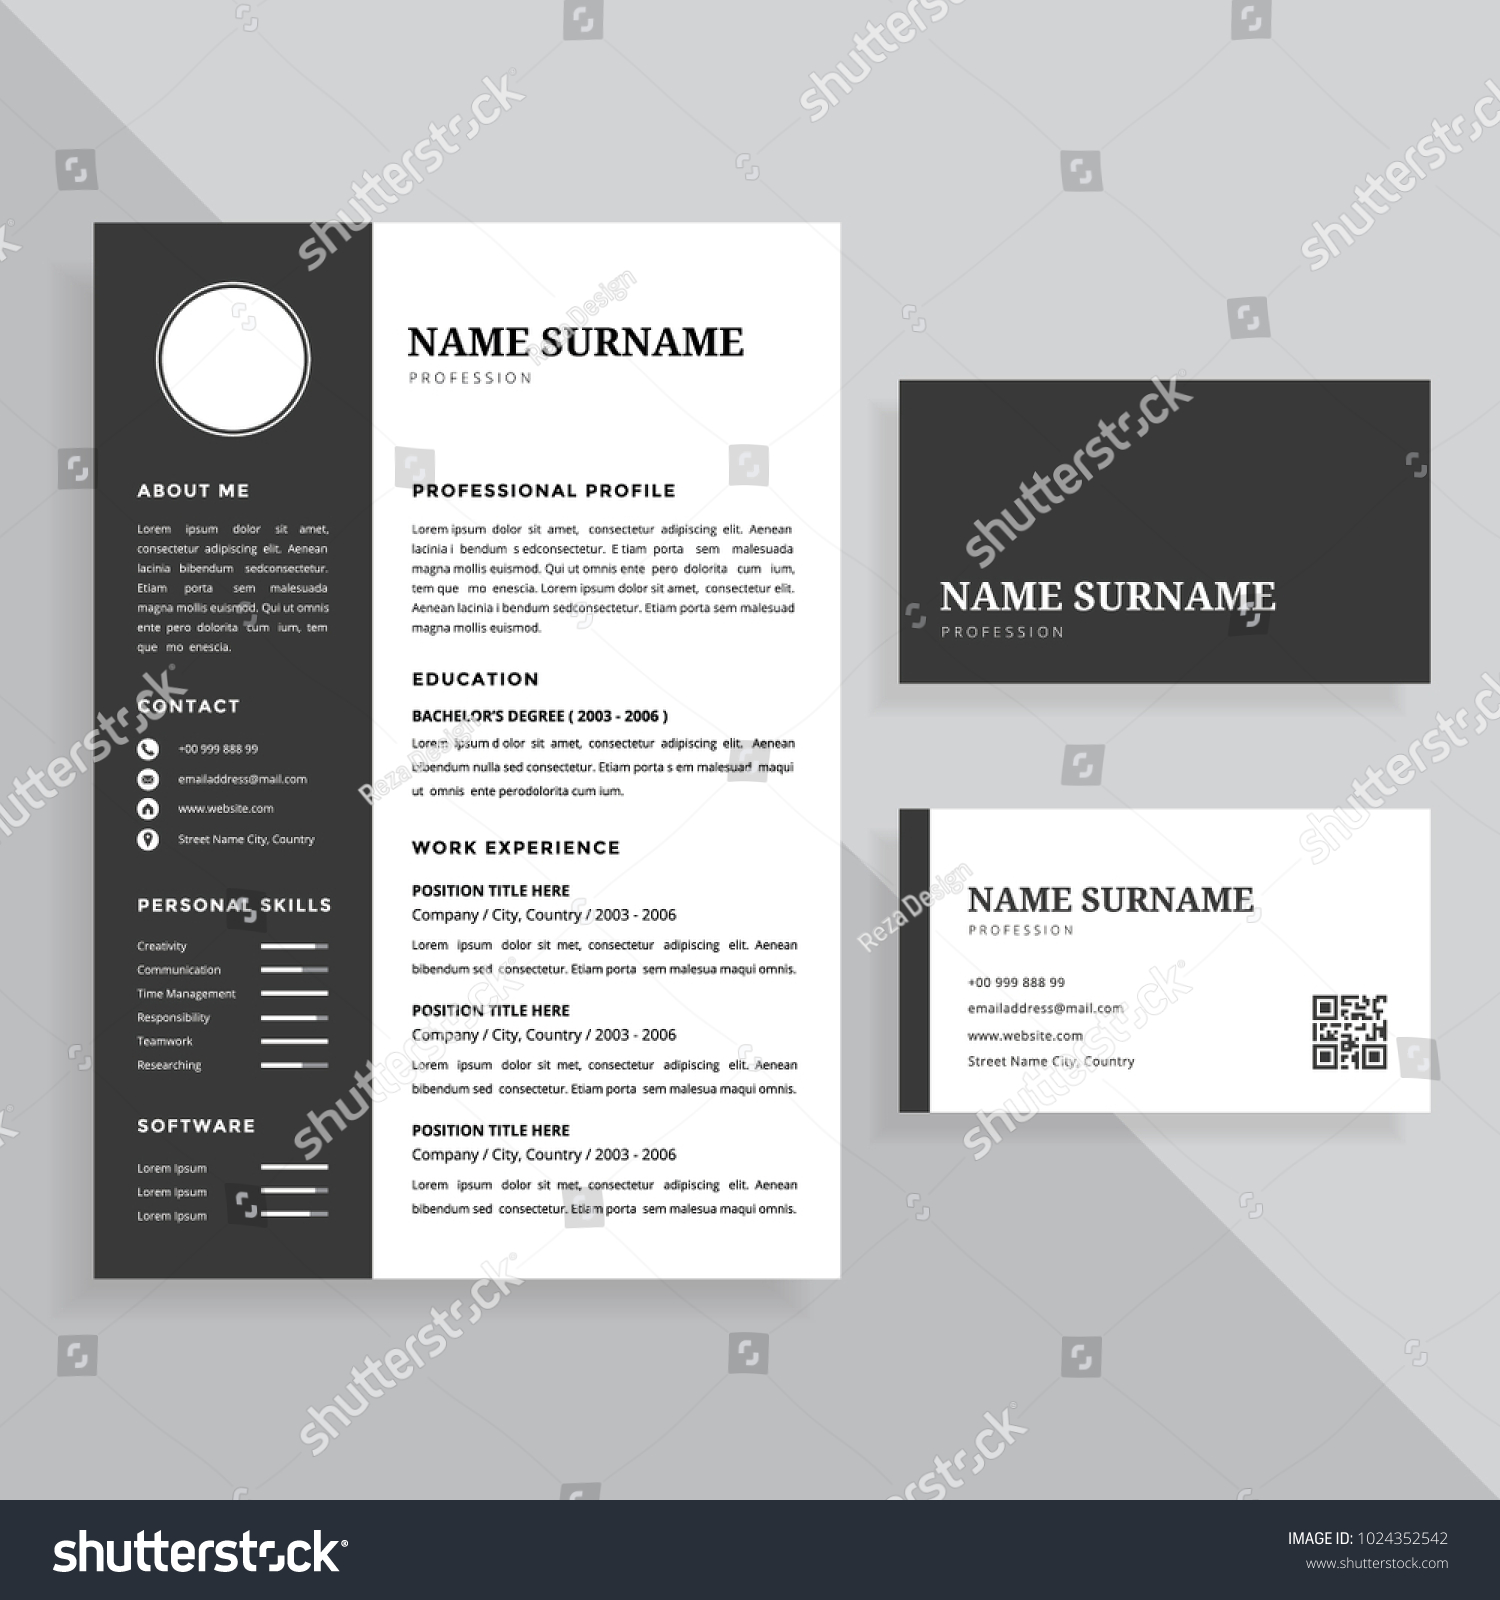 Professional Resume Cv Business Card Template Stock Vector ...